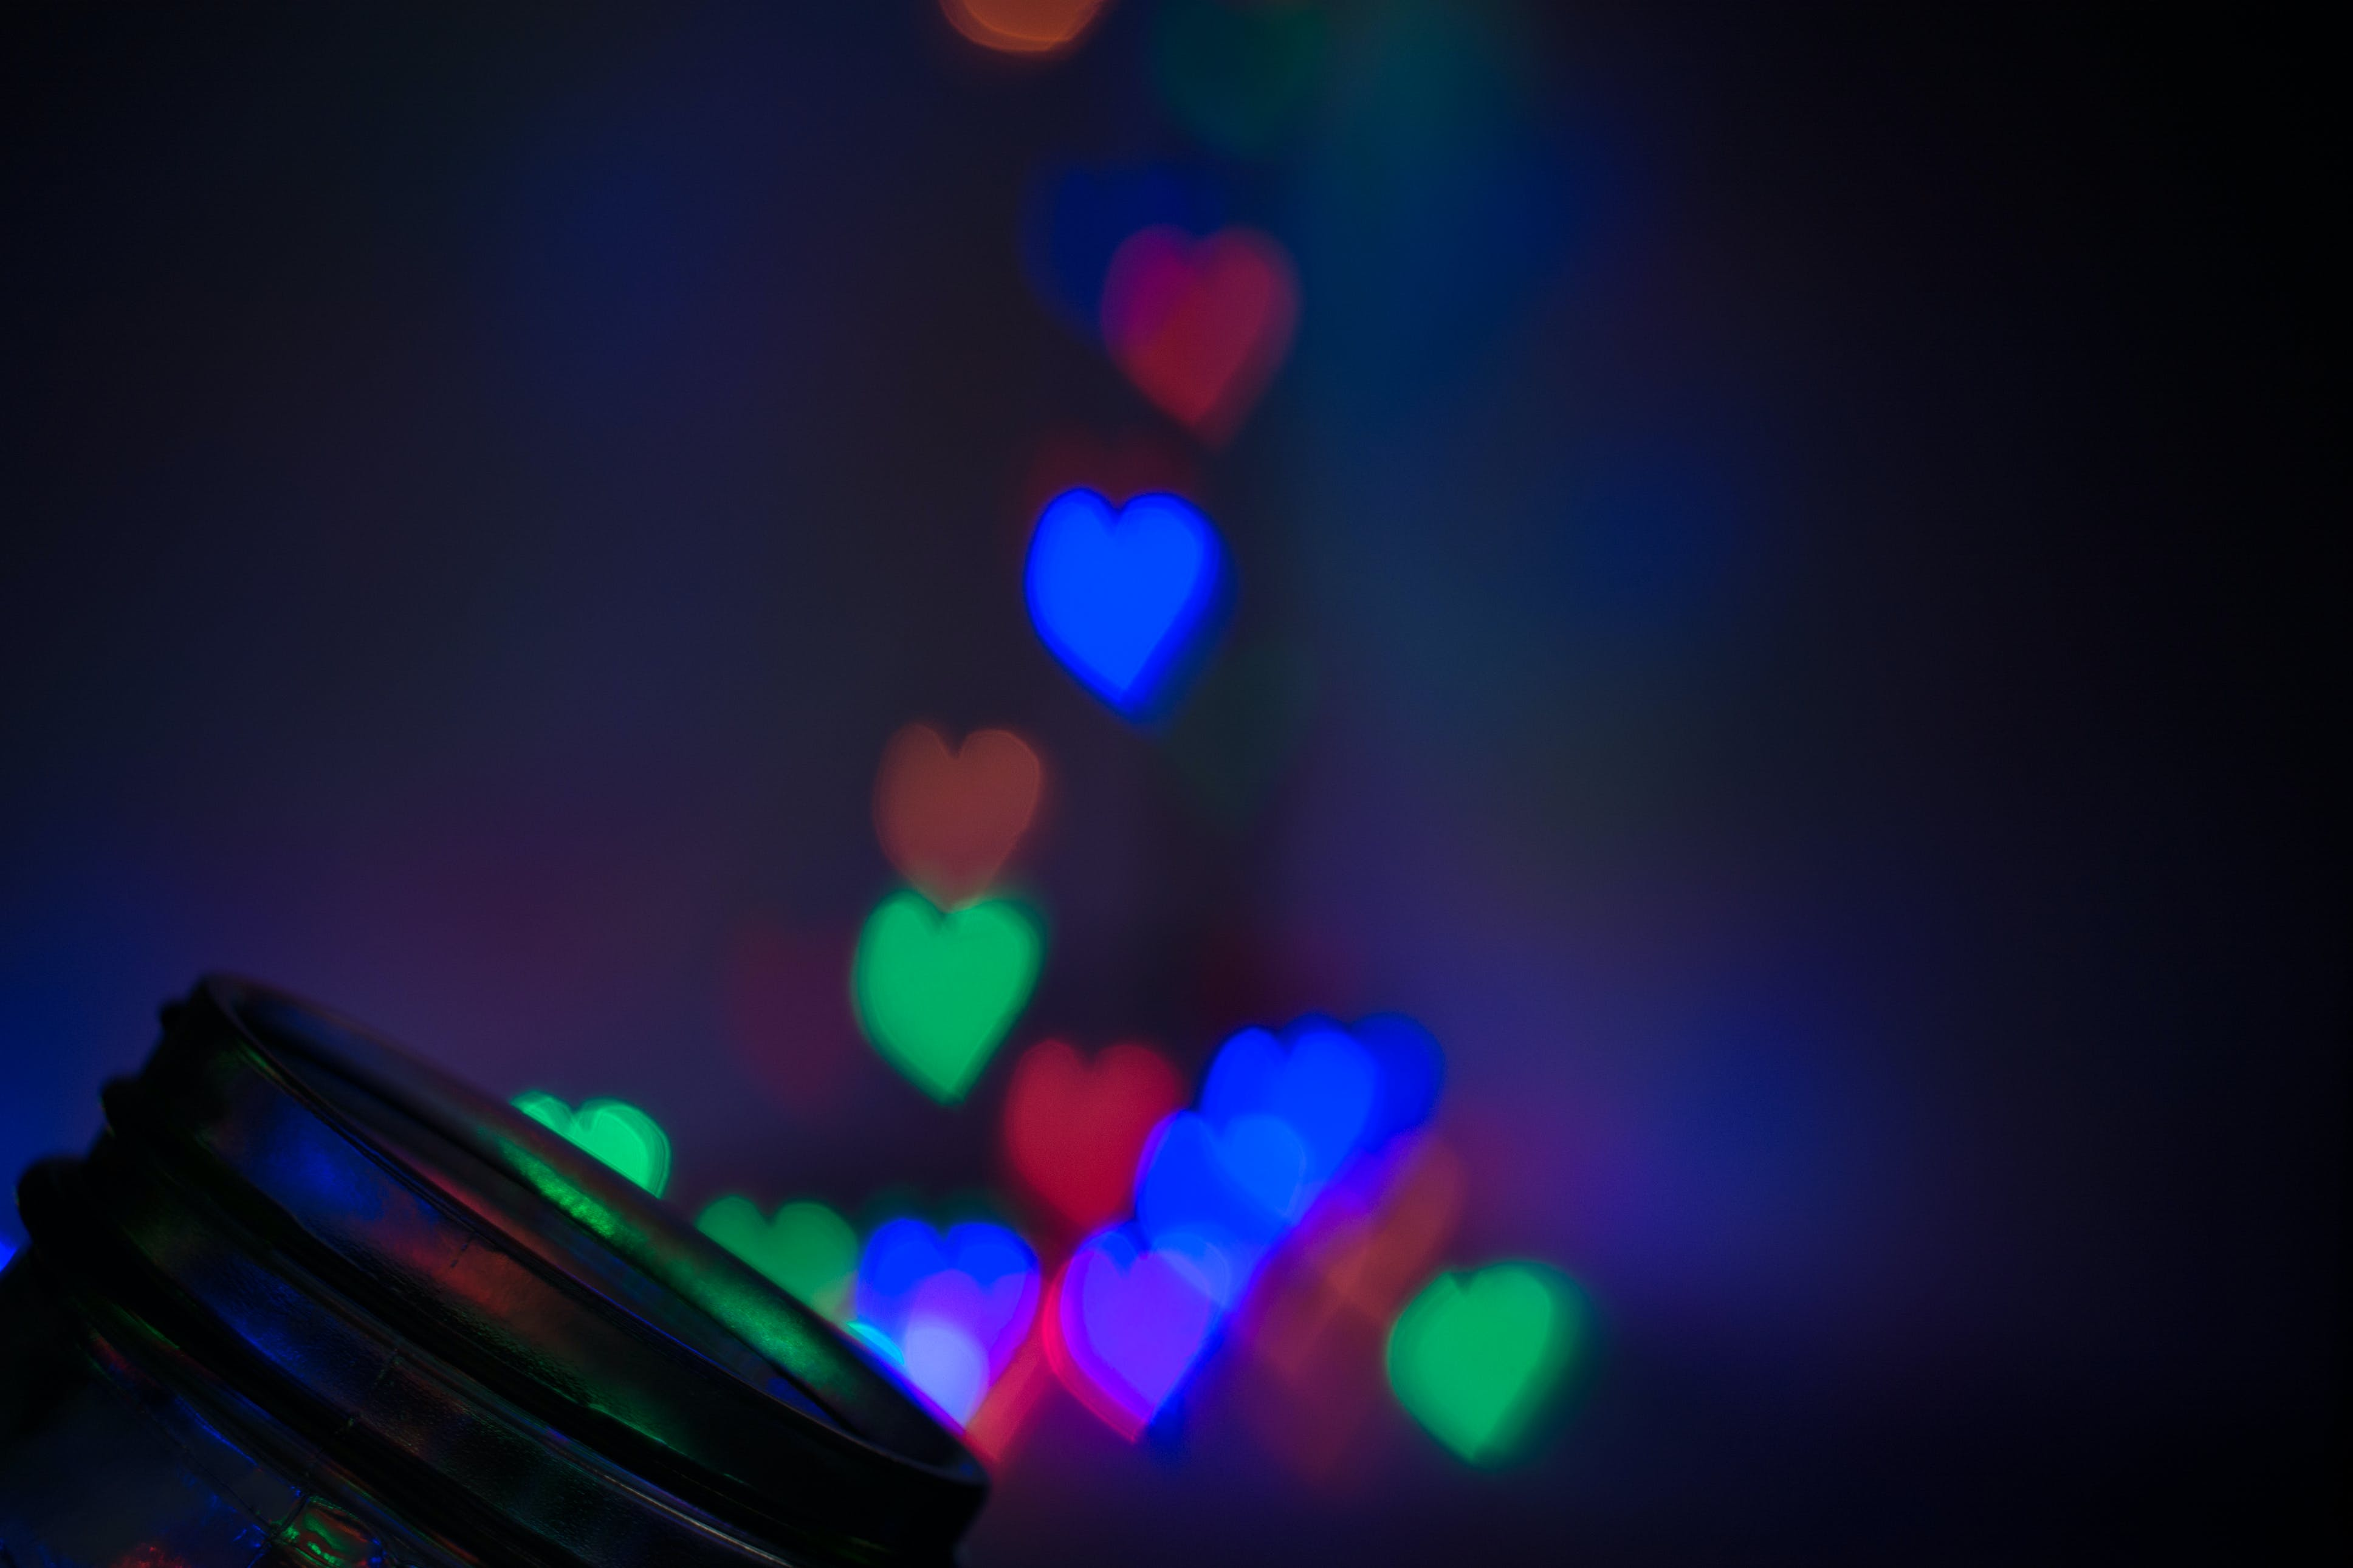 Multicolored Hearts Wallpaper